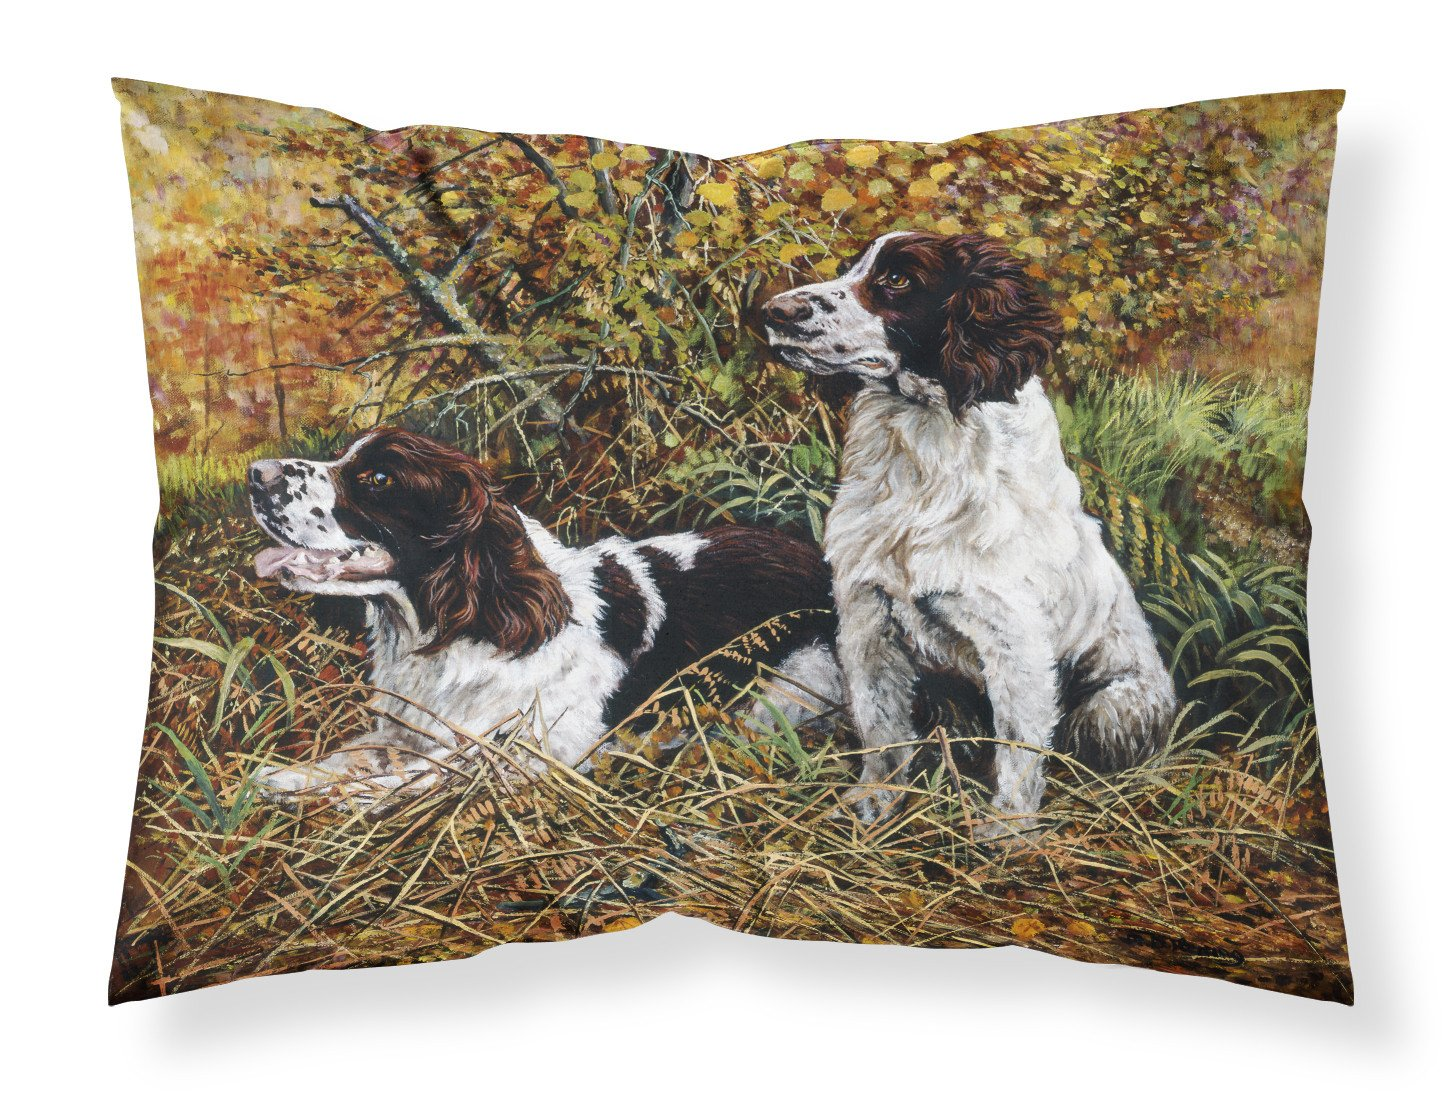 Two Springer Spaniels in the grasses Fabric Standard Pillowcase HMHE0002PILLOWCASE by Caroline's Treasures